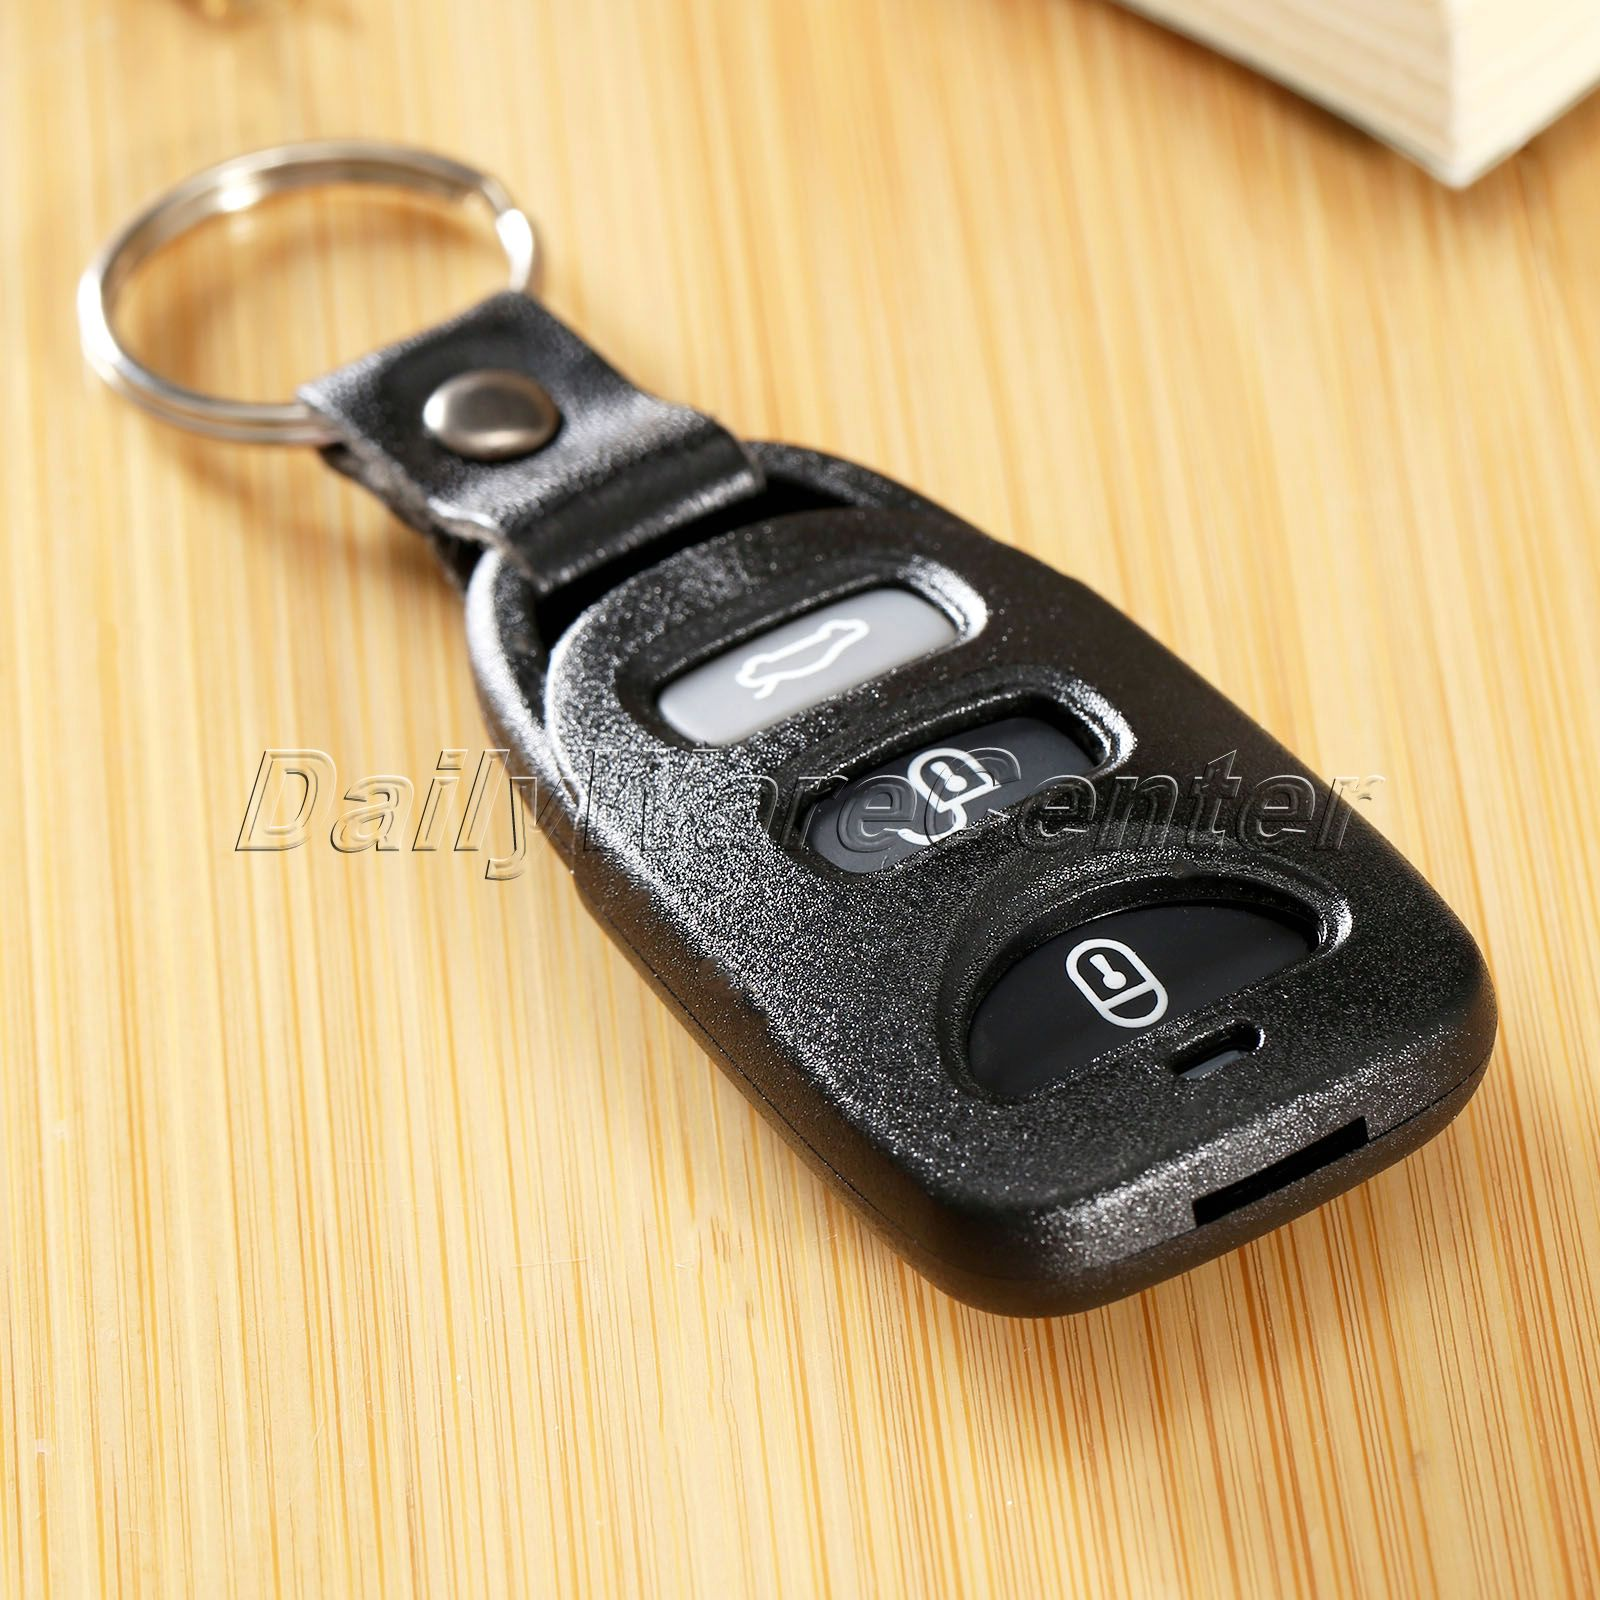 1Pc Auto Car Remote Key Shell Case Fit For 3 Buttons HYUNDAI Elantra Sonata I10 Keyless Fob Case Replacement Modified Flip Shell(China (Mainland))